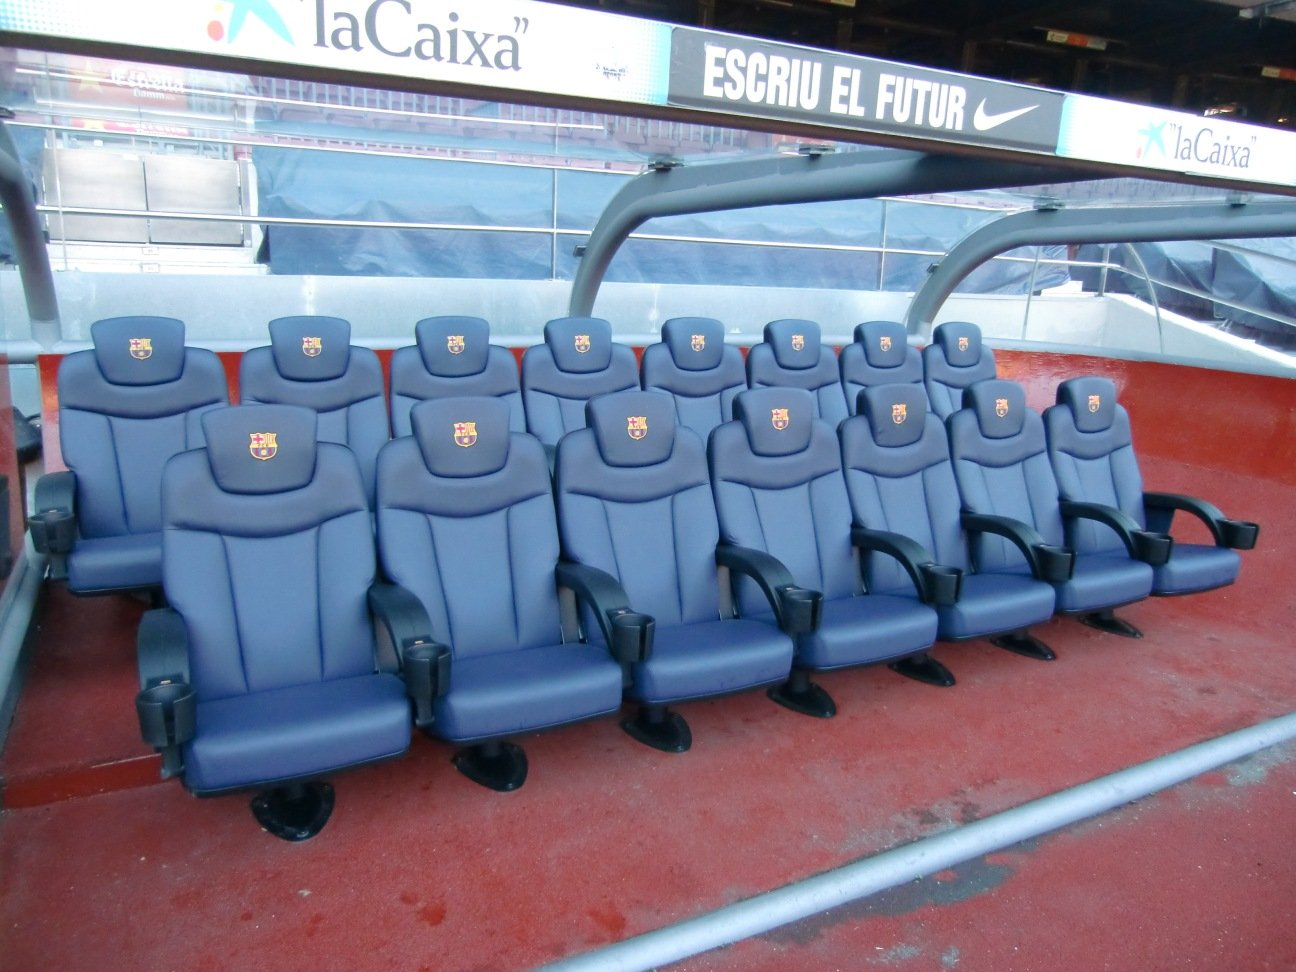 The soccer players chairs